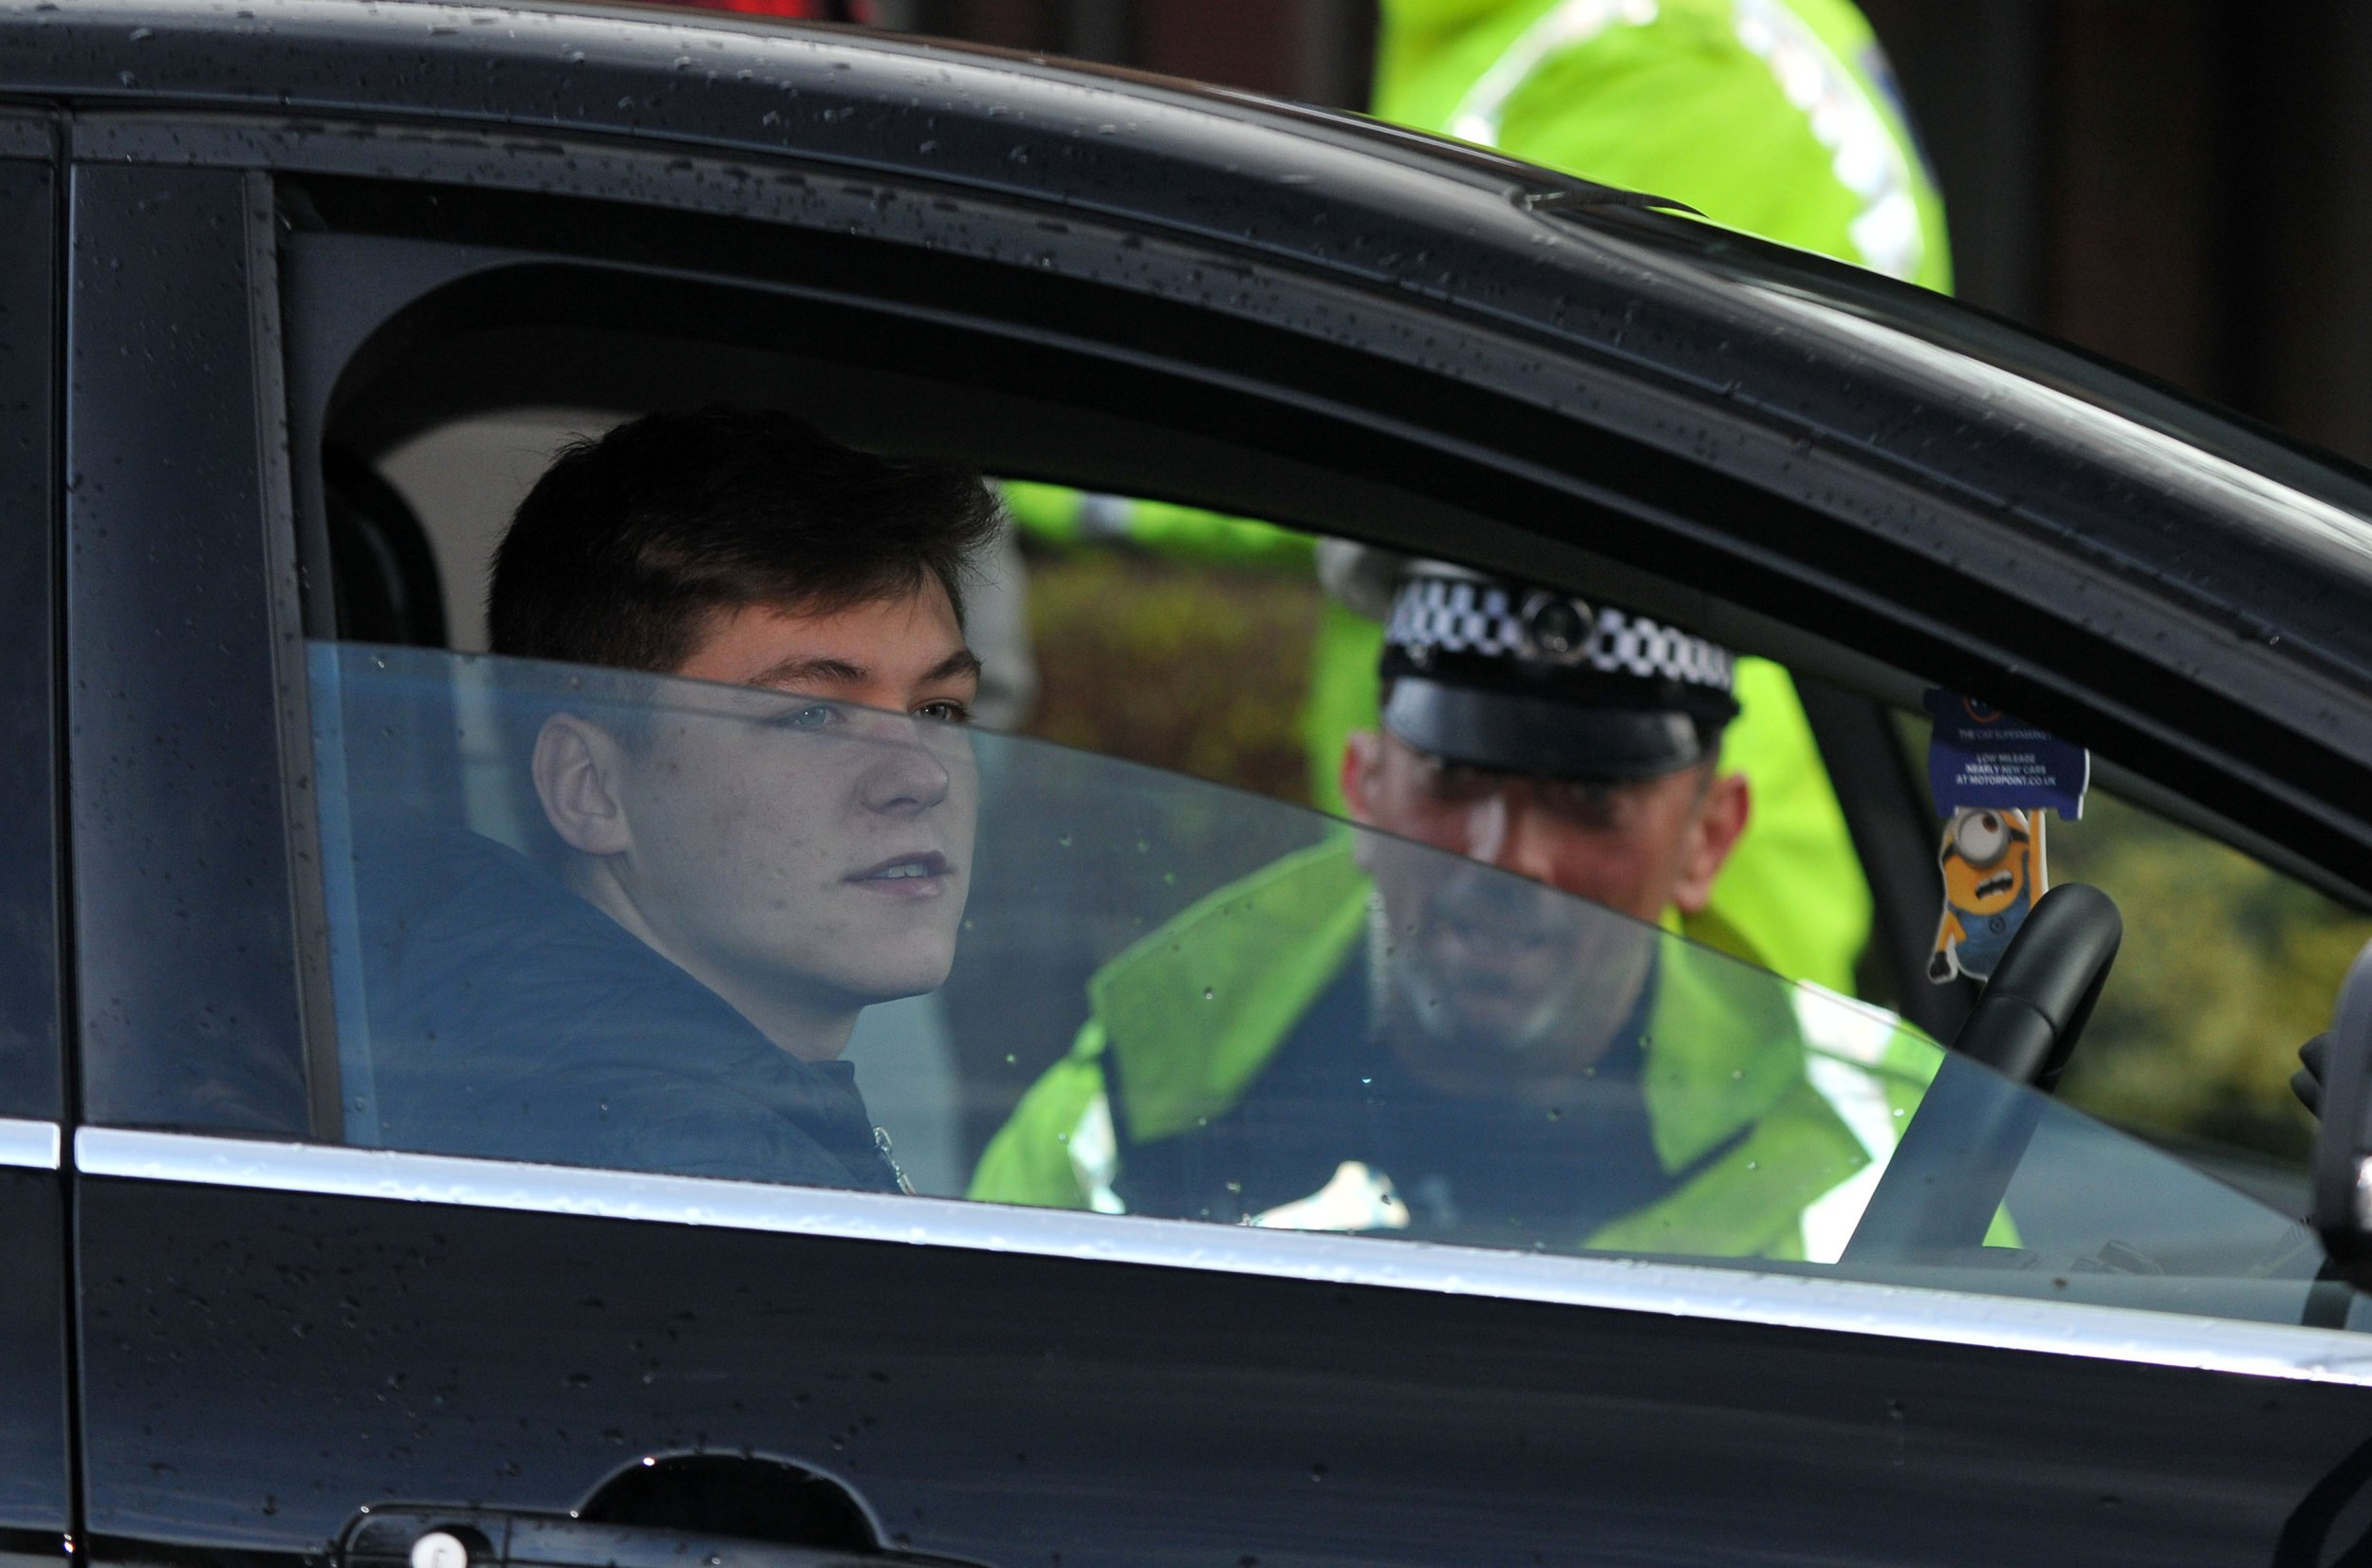 KERRY DAVIES/PICTURE DAILY MAIL 1/3/2017. Picture shows:A 19 year old lad faces his licence being revoked after getting caught this morning at a police check point in Abingdon. Police stop motorists in Abingdon Oxfordshire for mobile phone offences on the day new tougher punishments come into force for those caught driving and using a mobile phone.Drivers now face a £200 fine and 6 points on their licence.